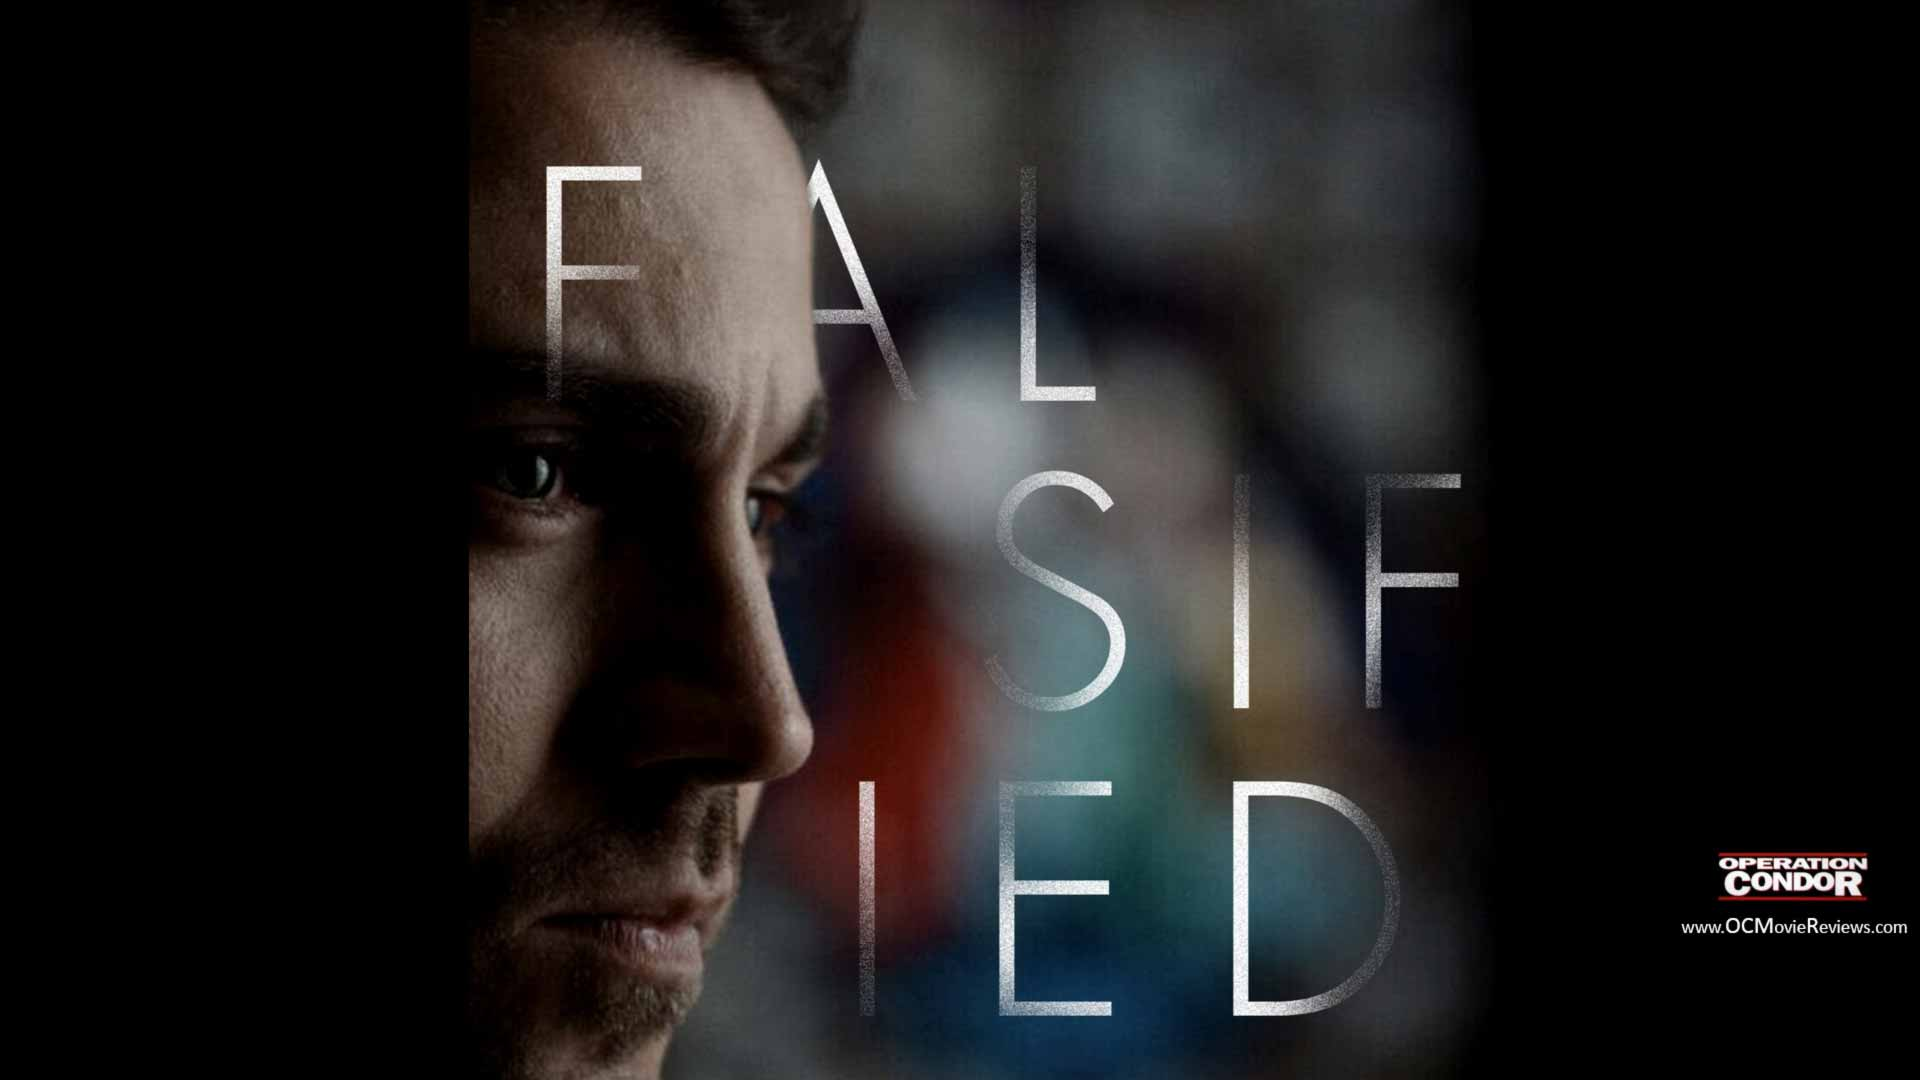 Falsified Short Film Review - OC Movie Reviews - Movie Reviews, Movie News, Documentary Reviews, Short Films, Short Film Reviews, Trailers, Movie Trailers, Interviews, film reviews, film news, hollywood, indie films, documentaries